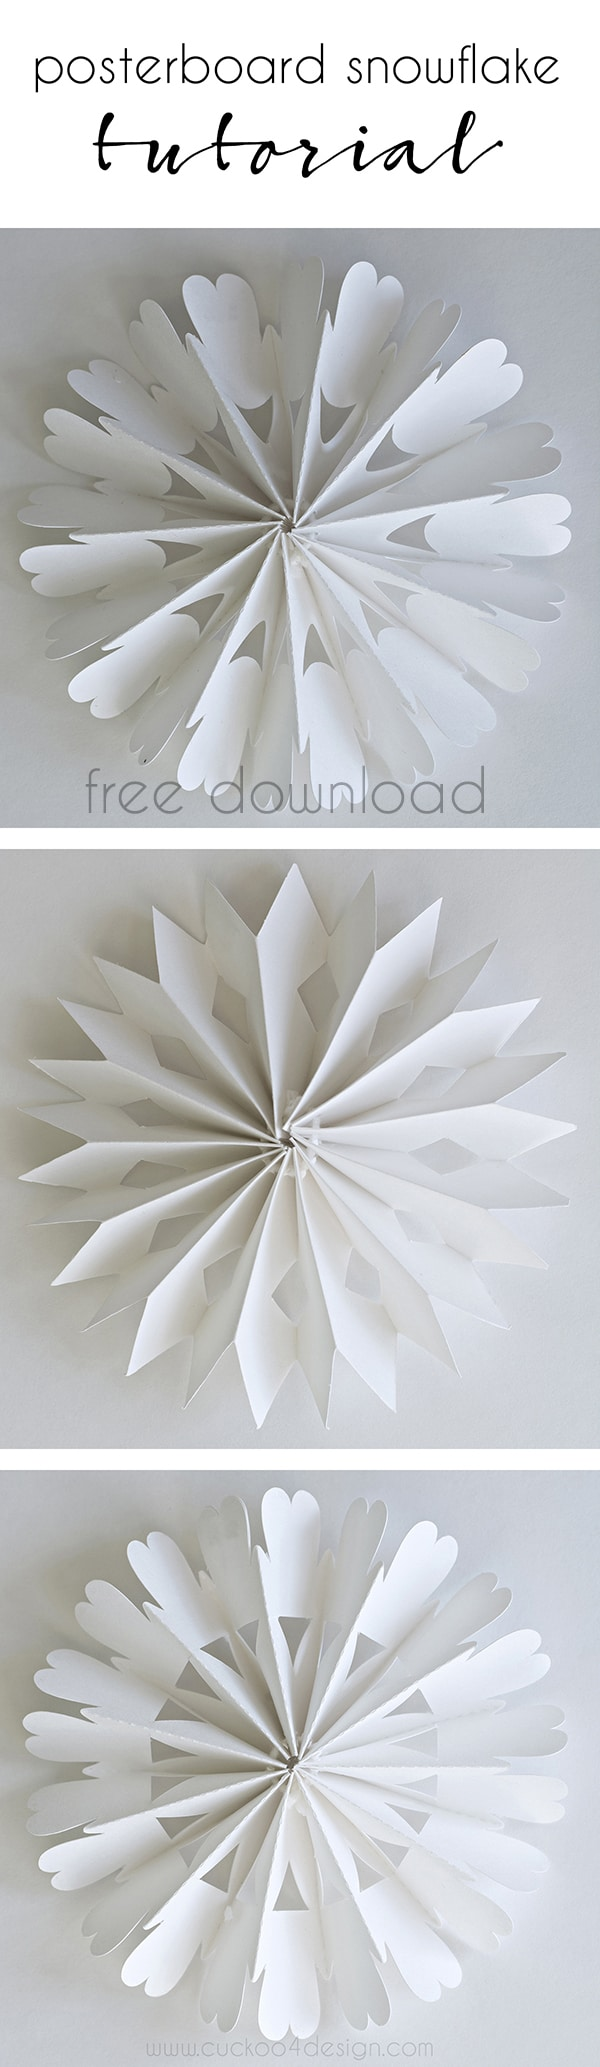 diy_posterboard_snowflake_ornament_free-download_cuckoo4design